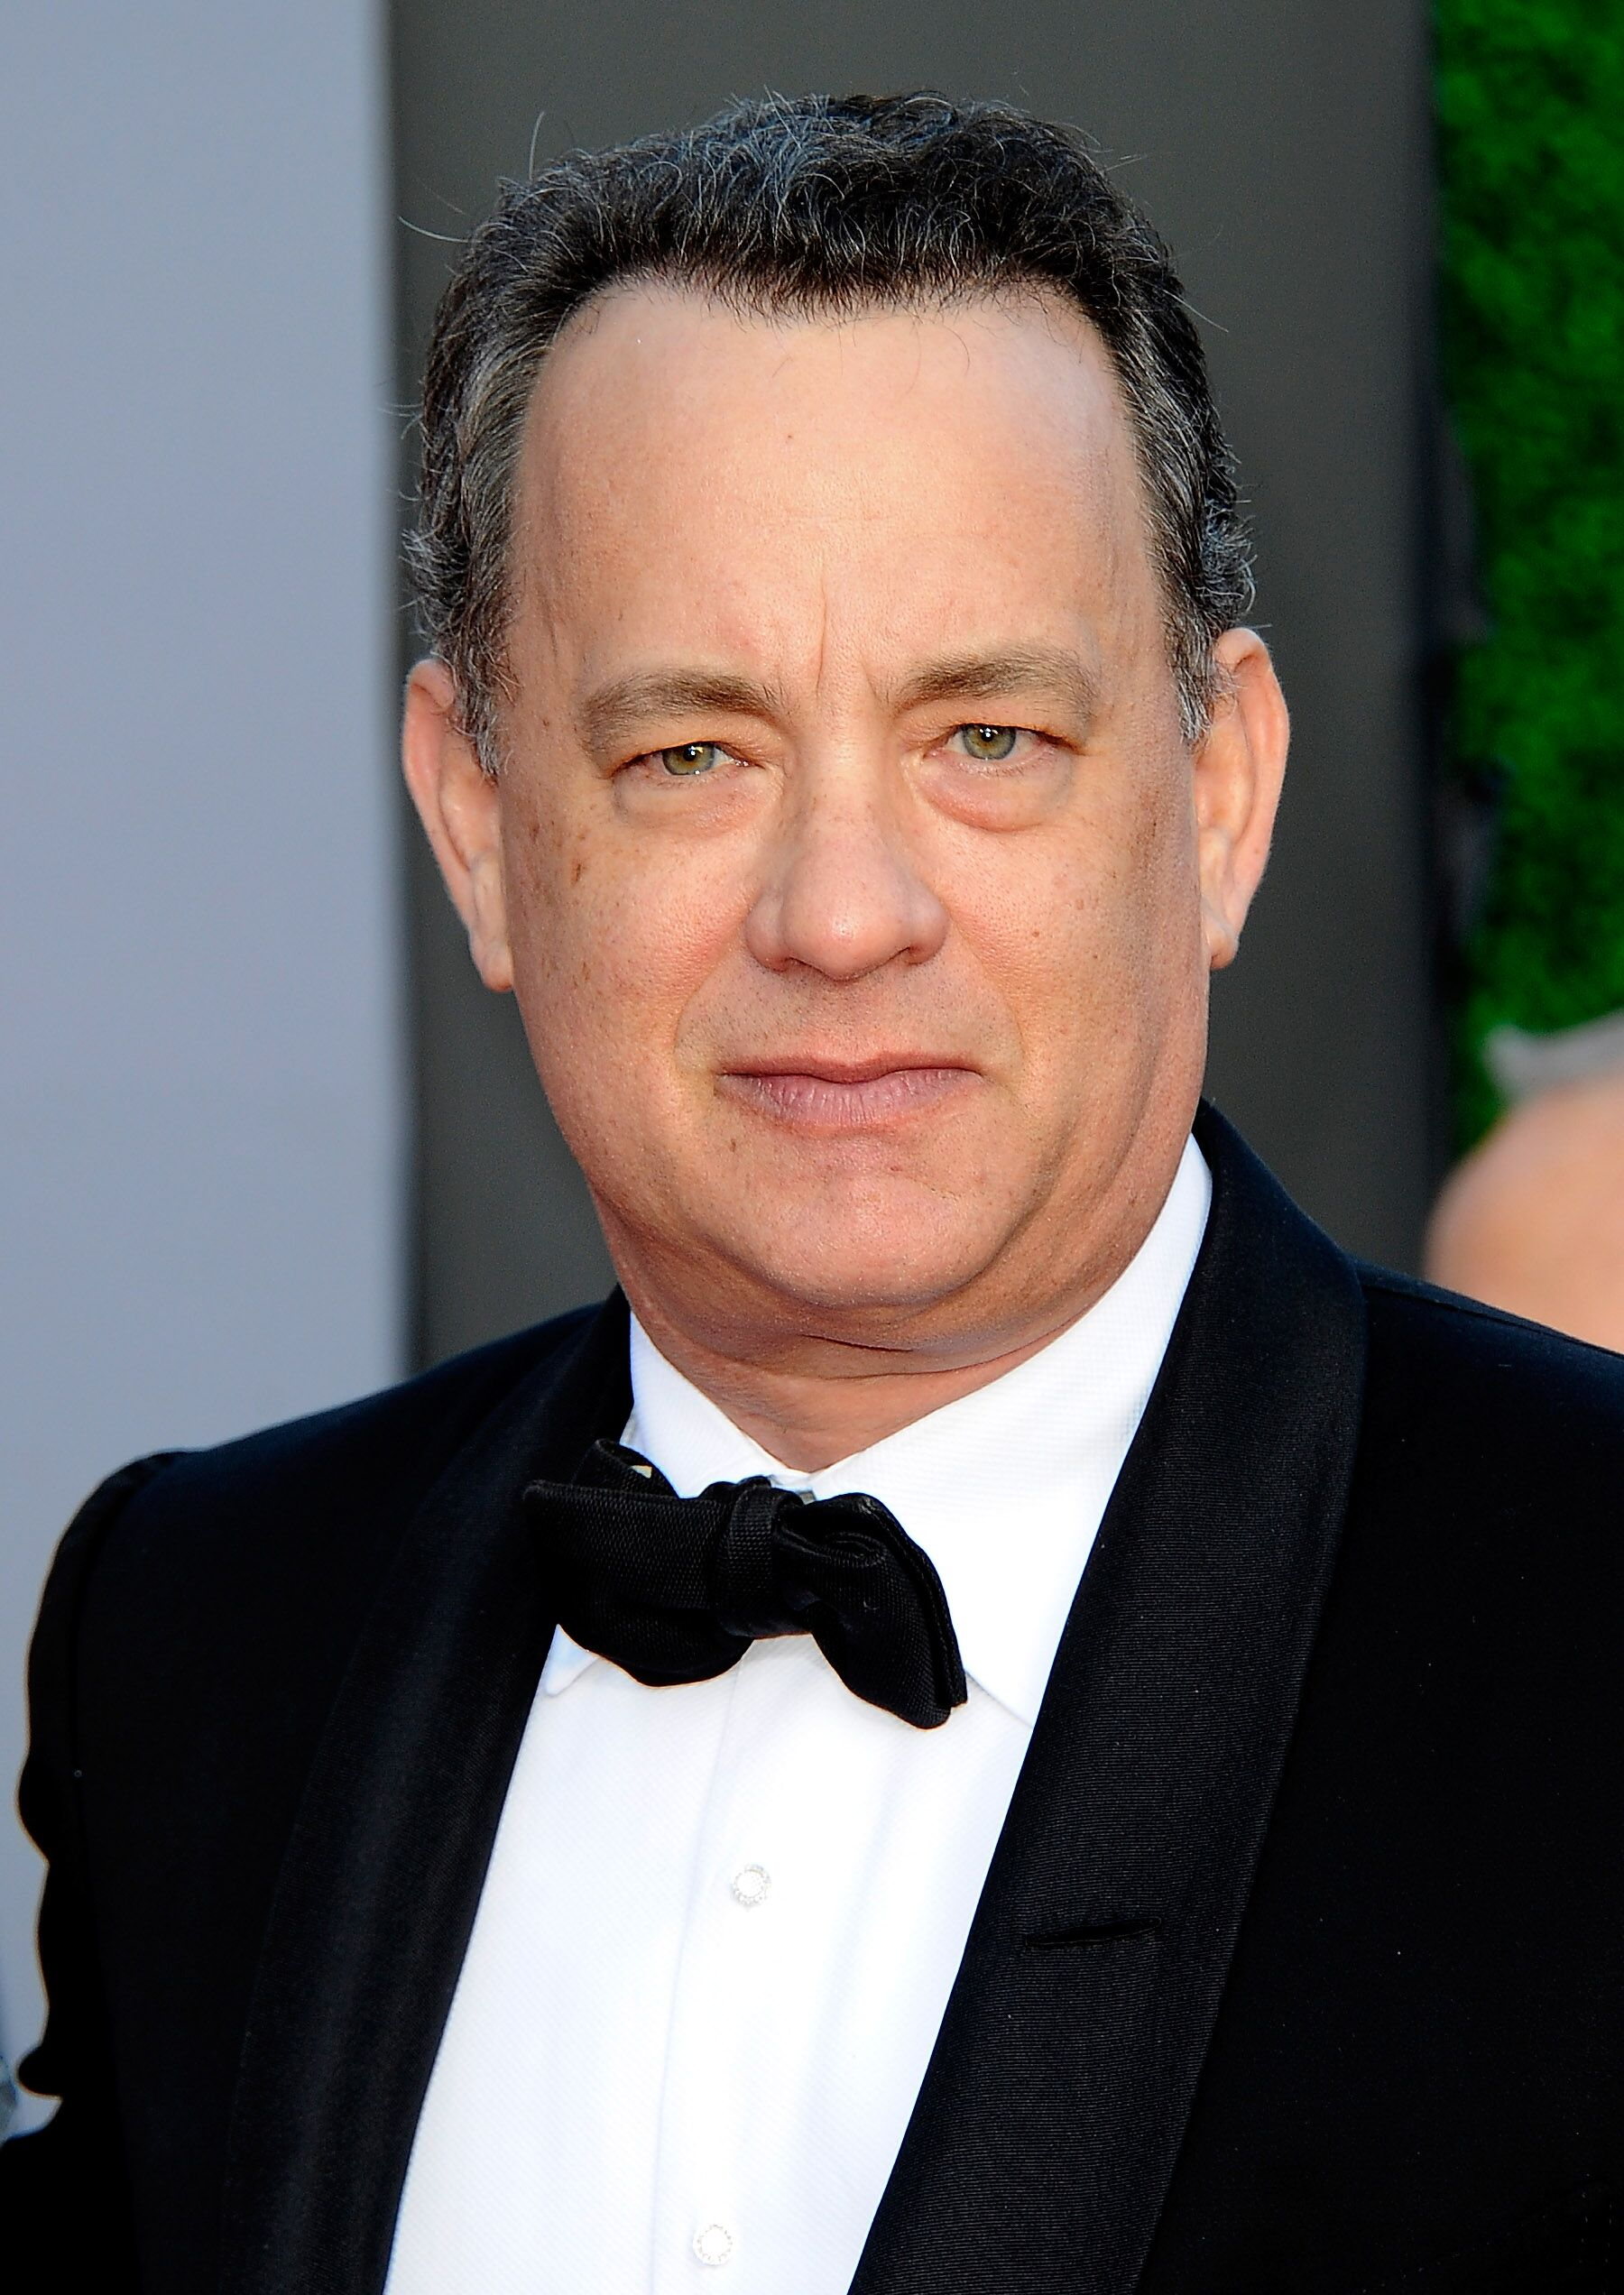 Actor Tom Hanks arrives at the BAFTA Brits To Watch event held at the Belasco Theatre    Getty Images / Global Images Ukraine